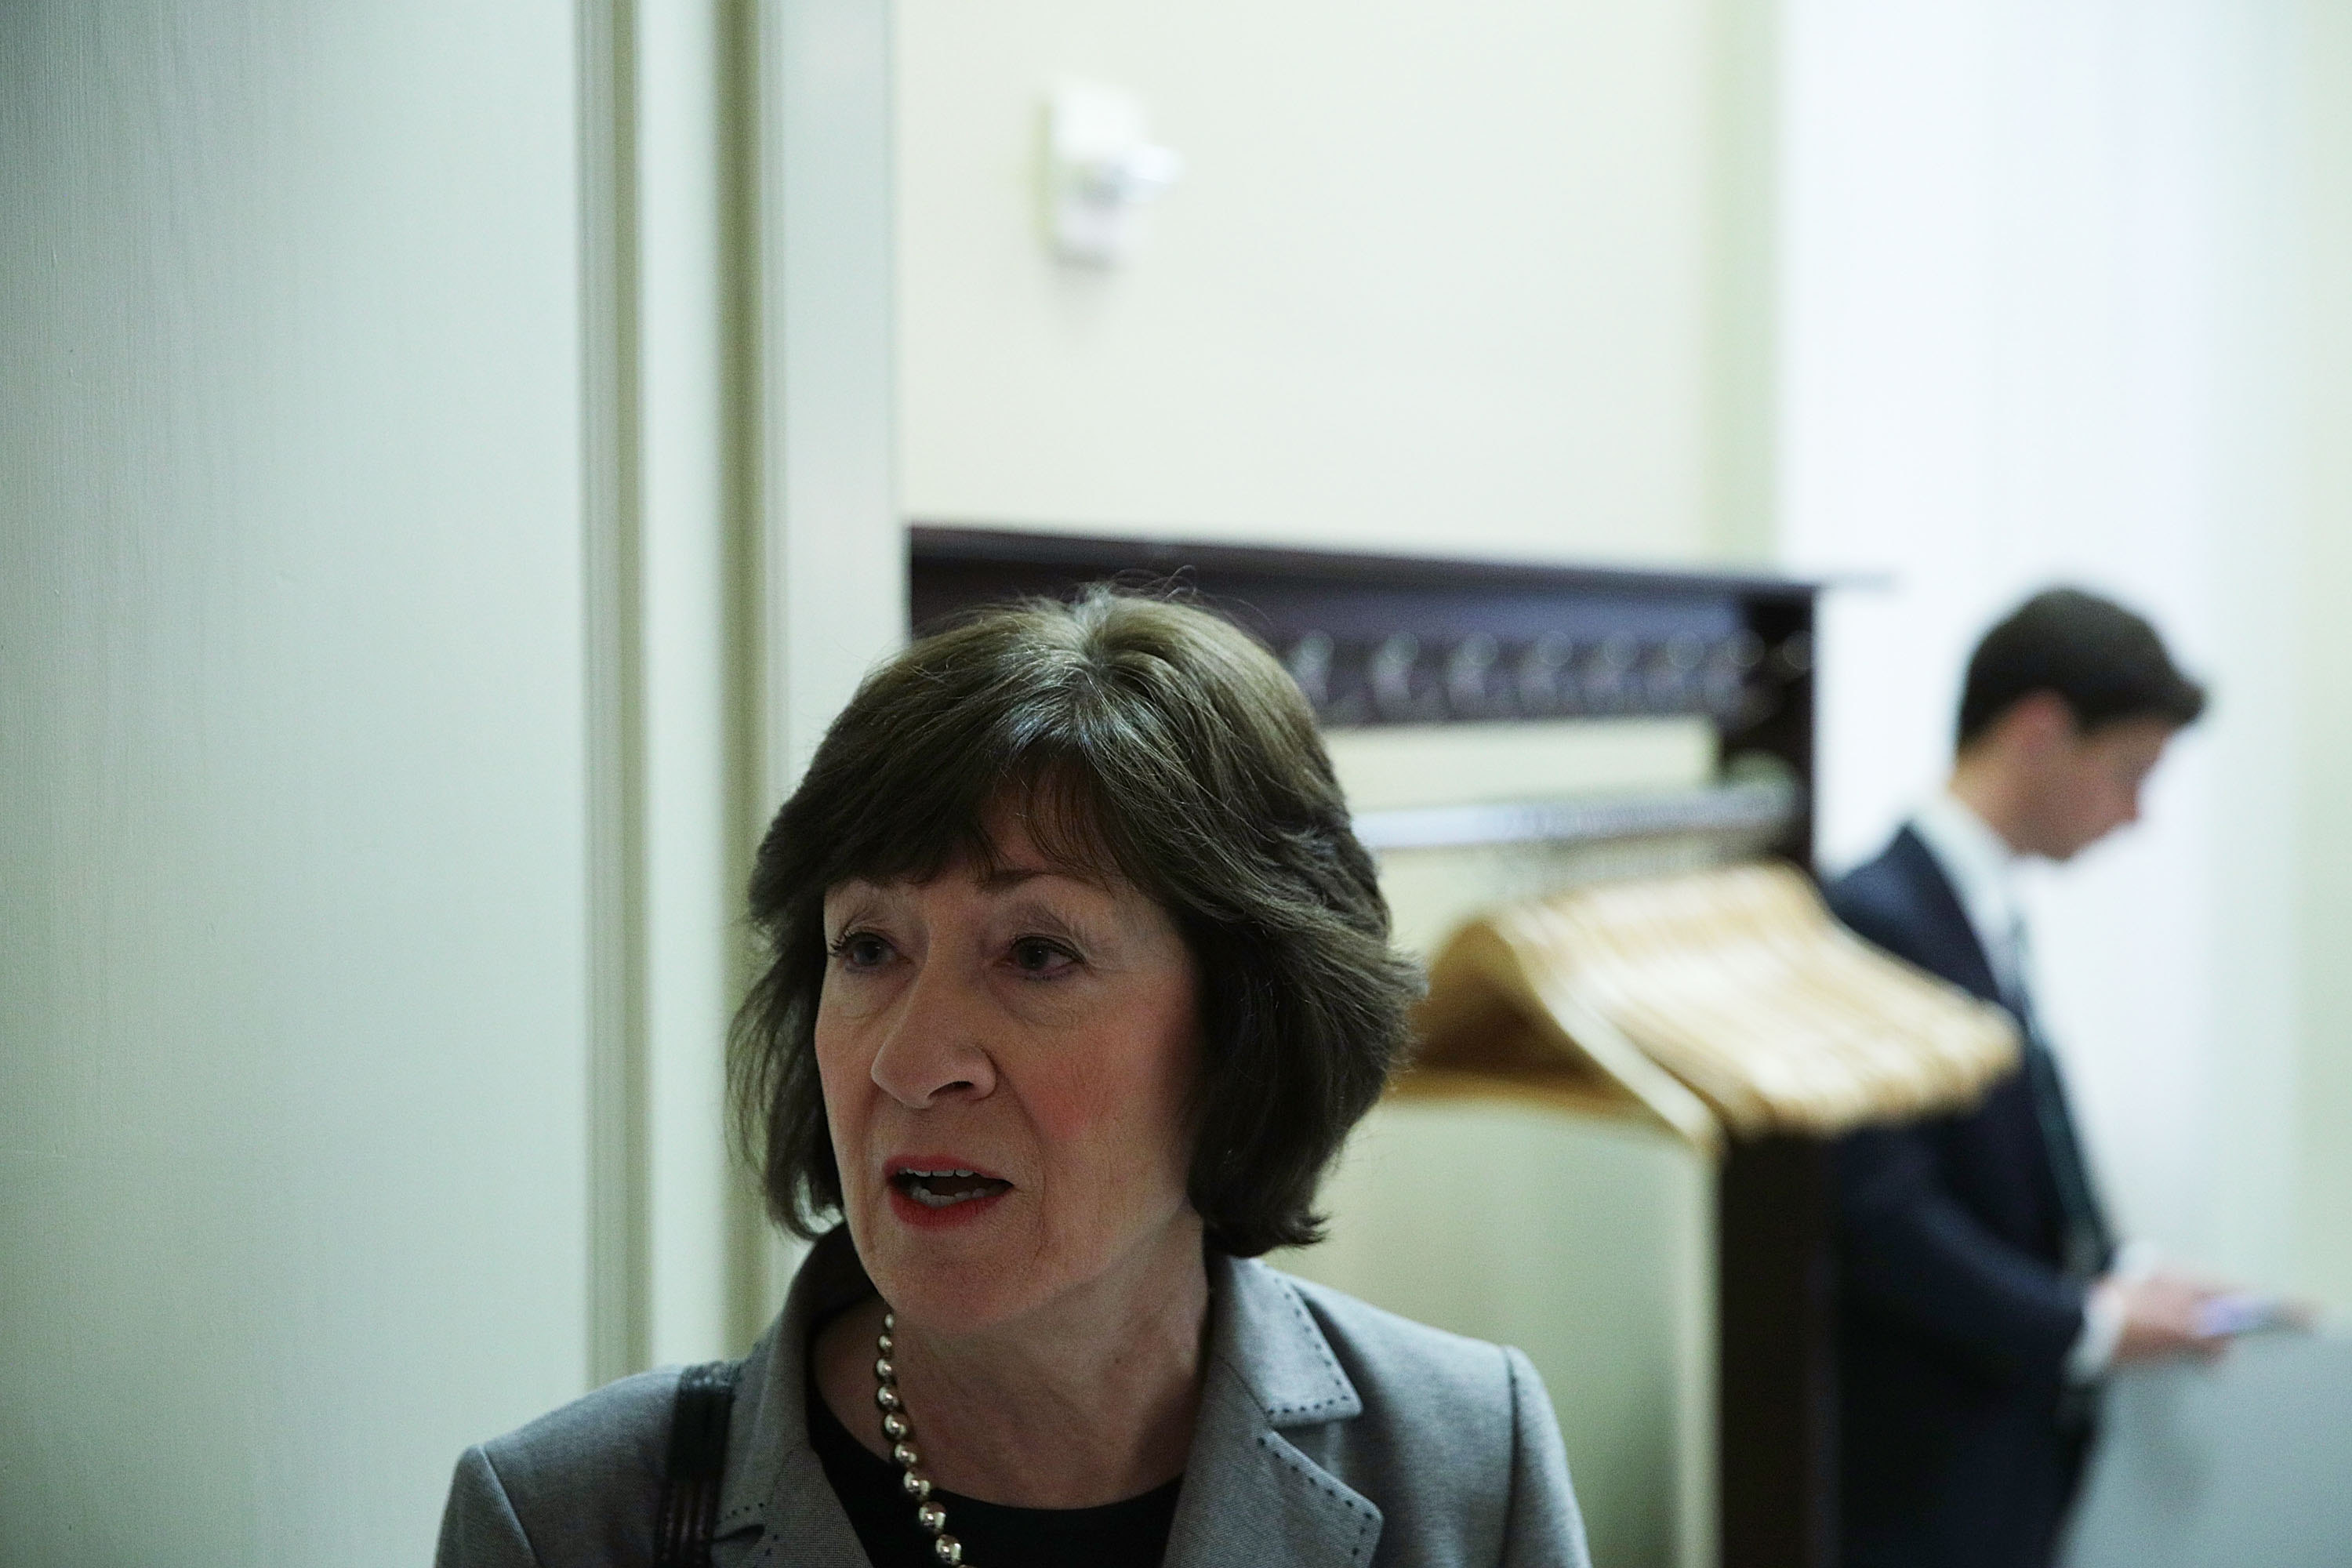 Sen. Susan Collins (R-Maine) arrives at the weekly Senate Republican Policy Luncheon at the Capitol May 9, 2017. Senate Republican held a policy luncheon to discuss GOP agenda. (Getty Images)